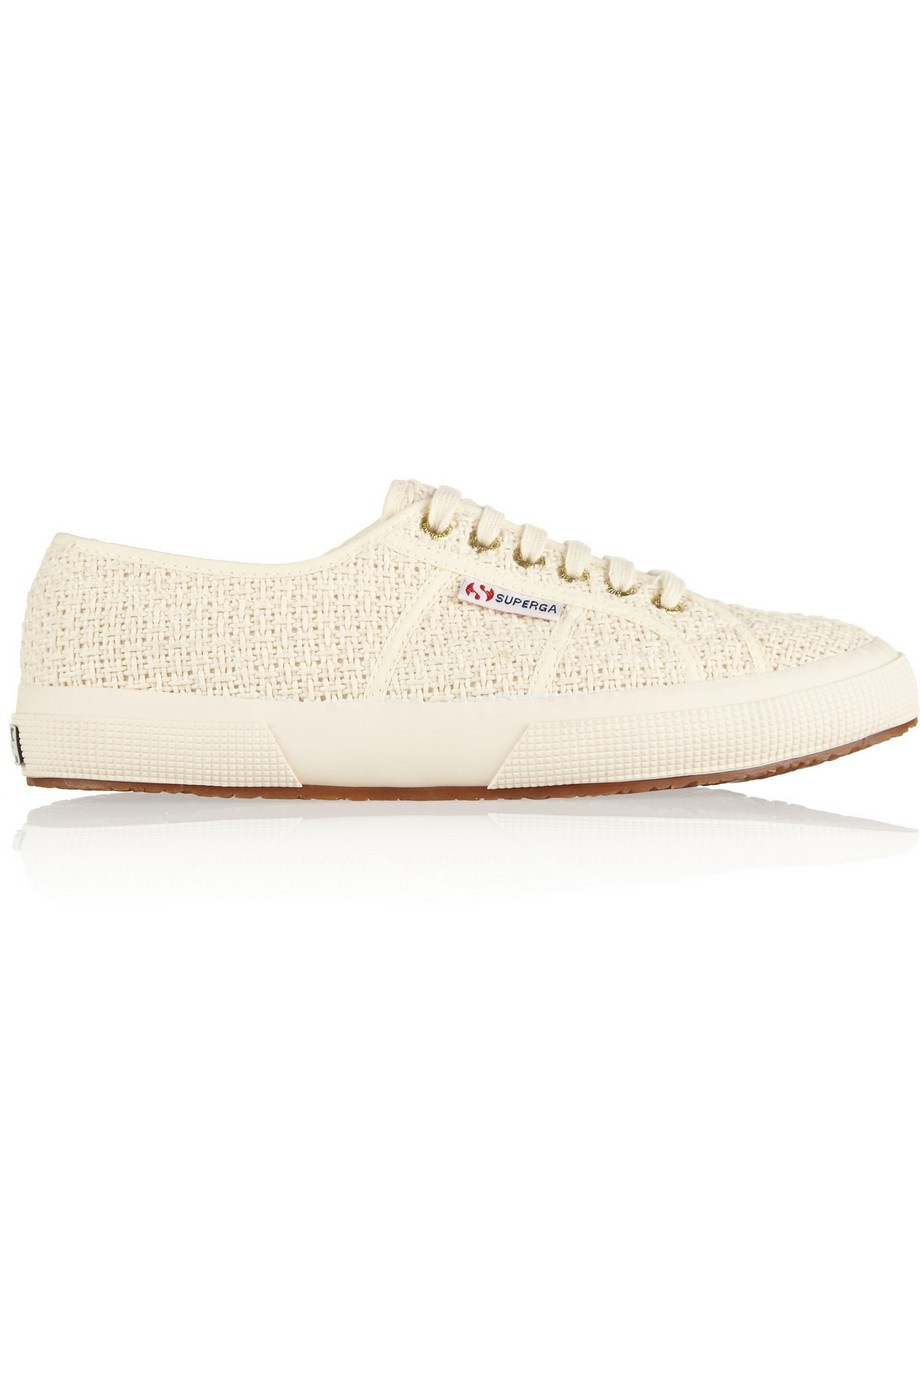 2750 Croquet woven canvas sneakers